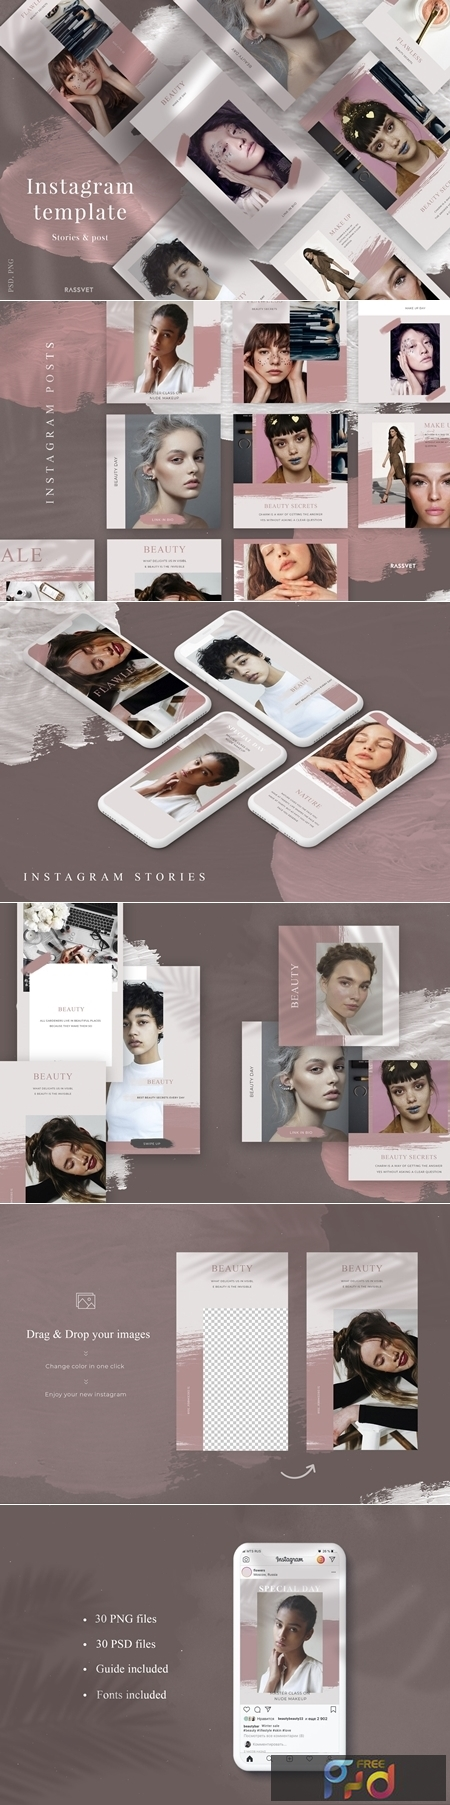 Beauty Instagram Template, Social media pack, Fashion stories template 1